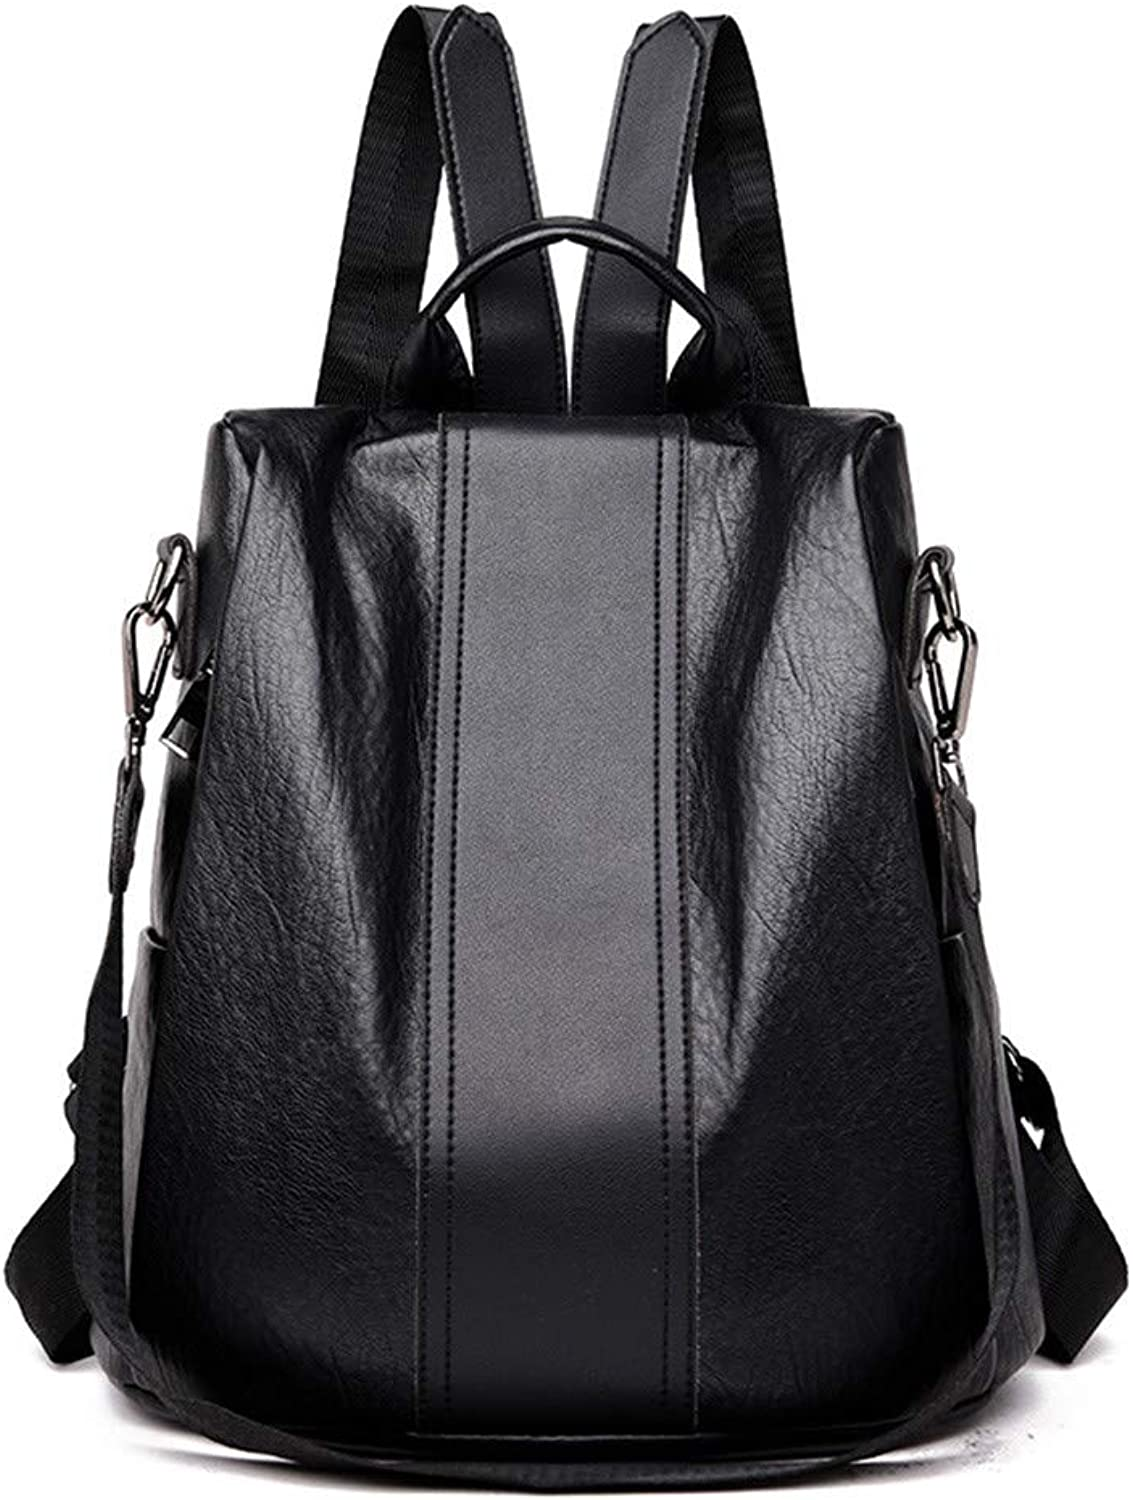 H-M-STUDIO New Simple Soft Leather Korean Version Baitao Fashion Large-Capacity Women's Backpack Black 30  14  32Cm